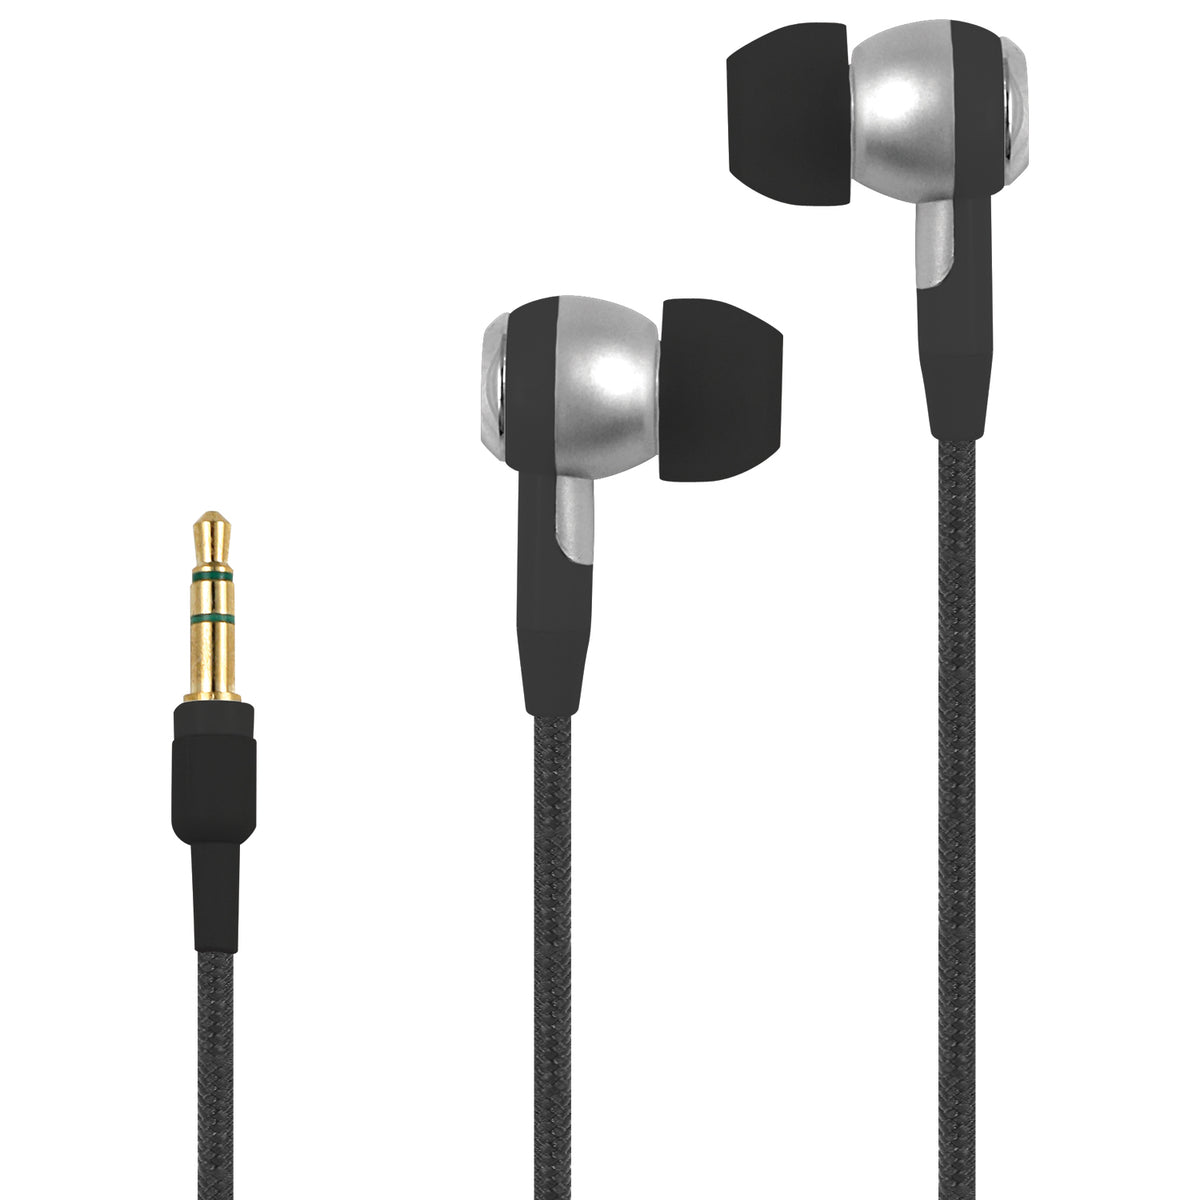 Stereo Earbuds with Heavy Duty Braided Cables